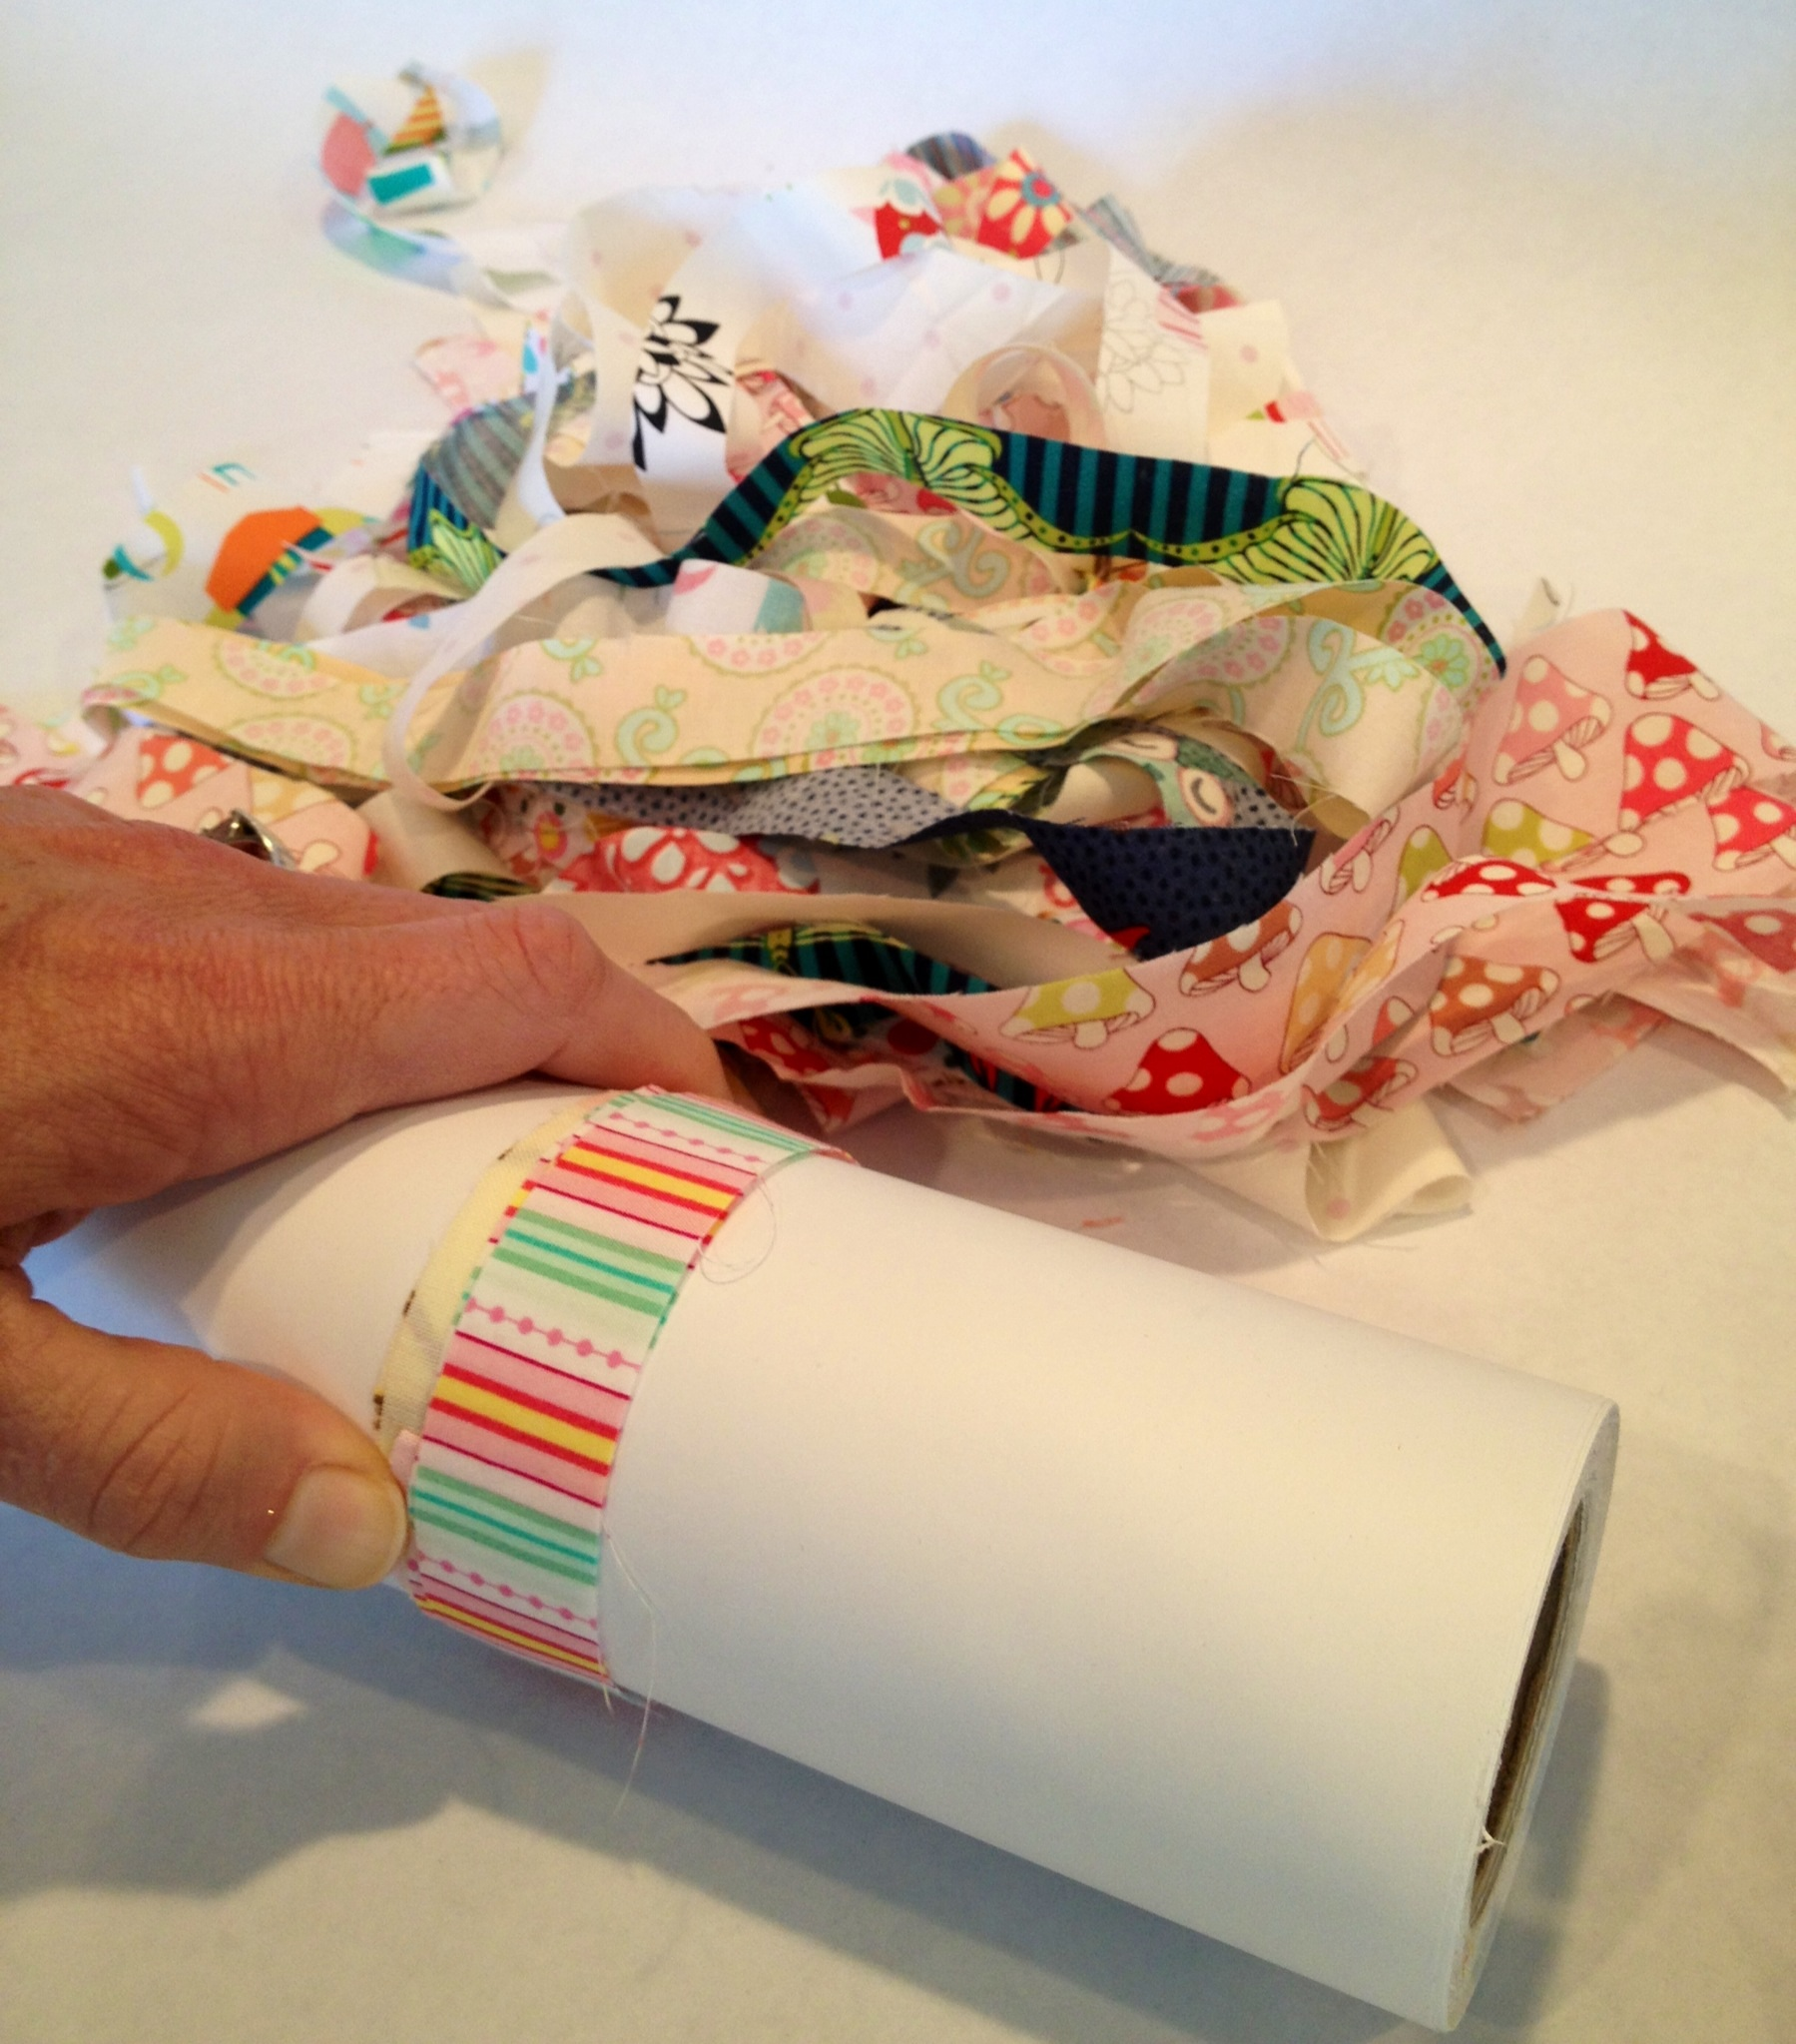 Step 2 Partytime Kitchen: Wrap The Fabric Scraps